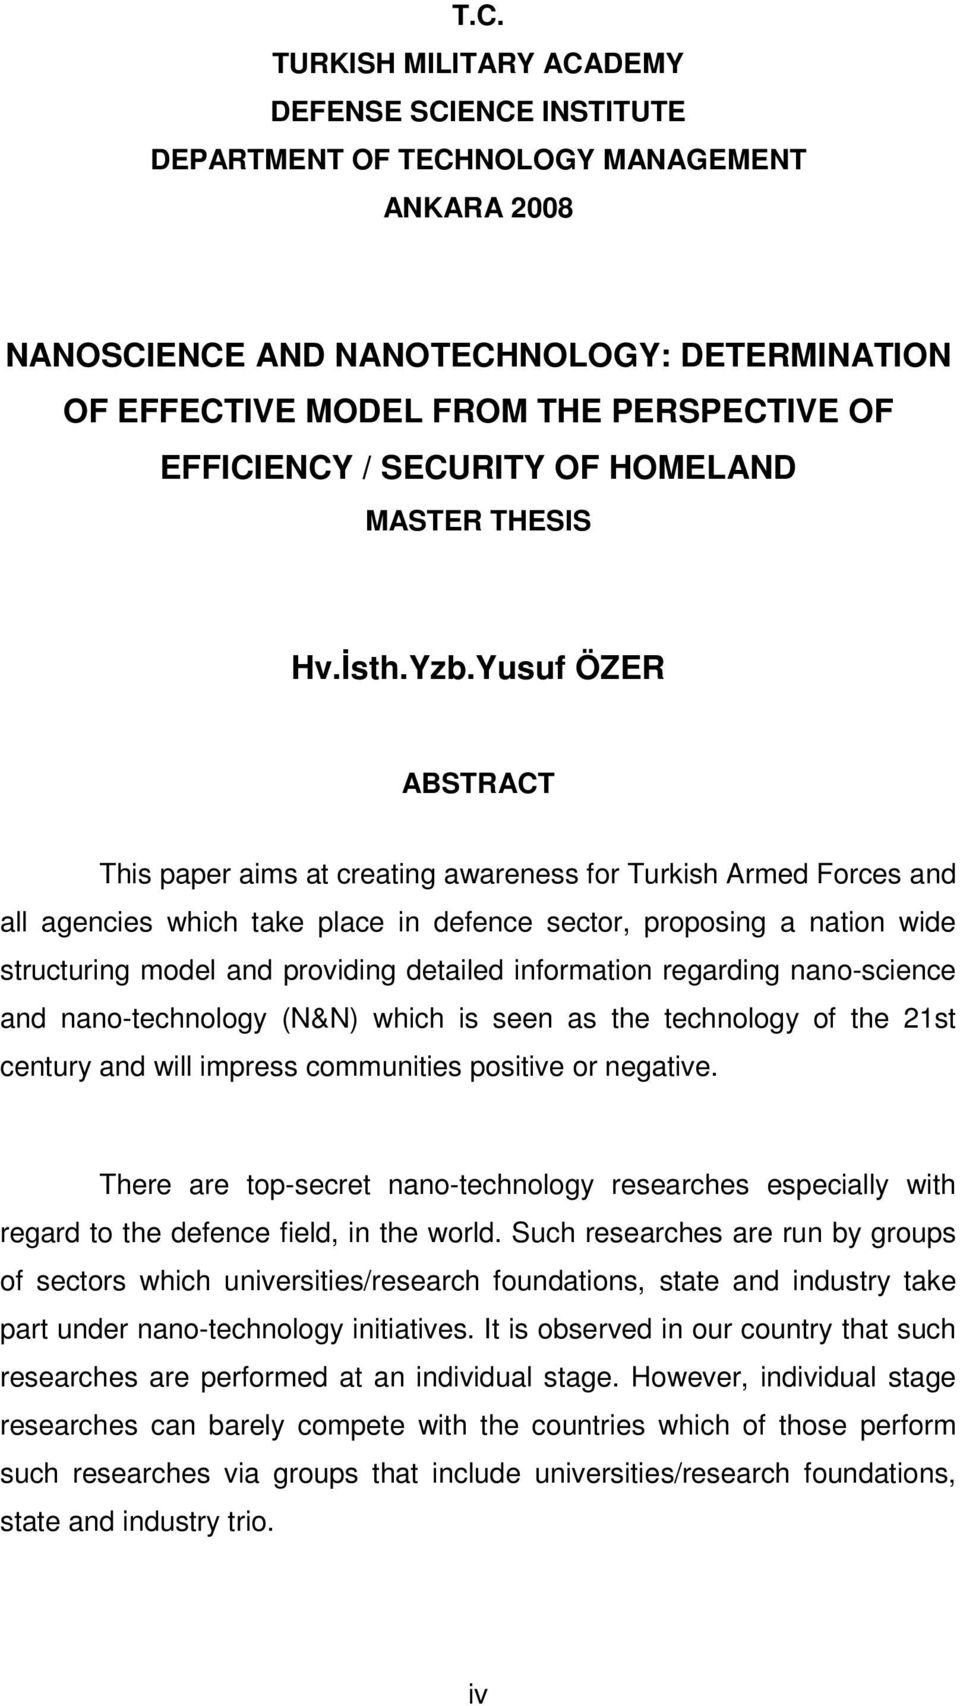 Yusuf ÖZER ABSTRACT This paper aims at creating awareness for Turkish Armed Forces and all agencies which take place in defence sector, proposing a nation wide structuring model and providing